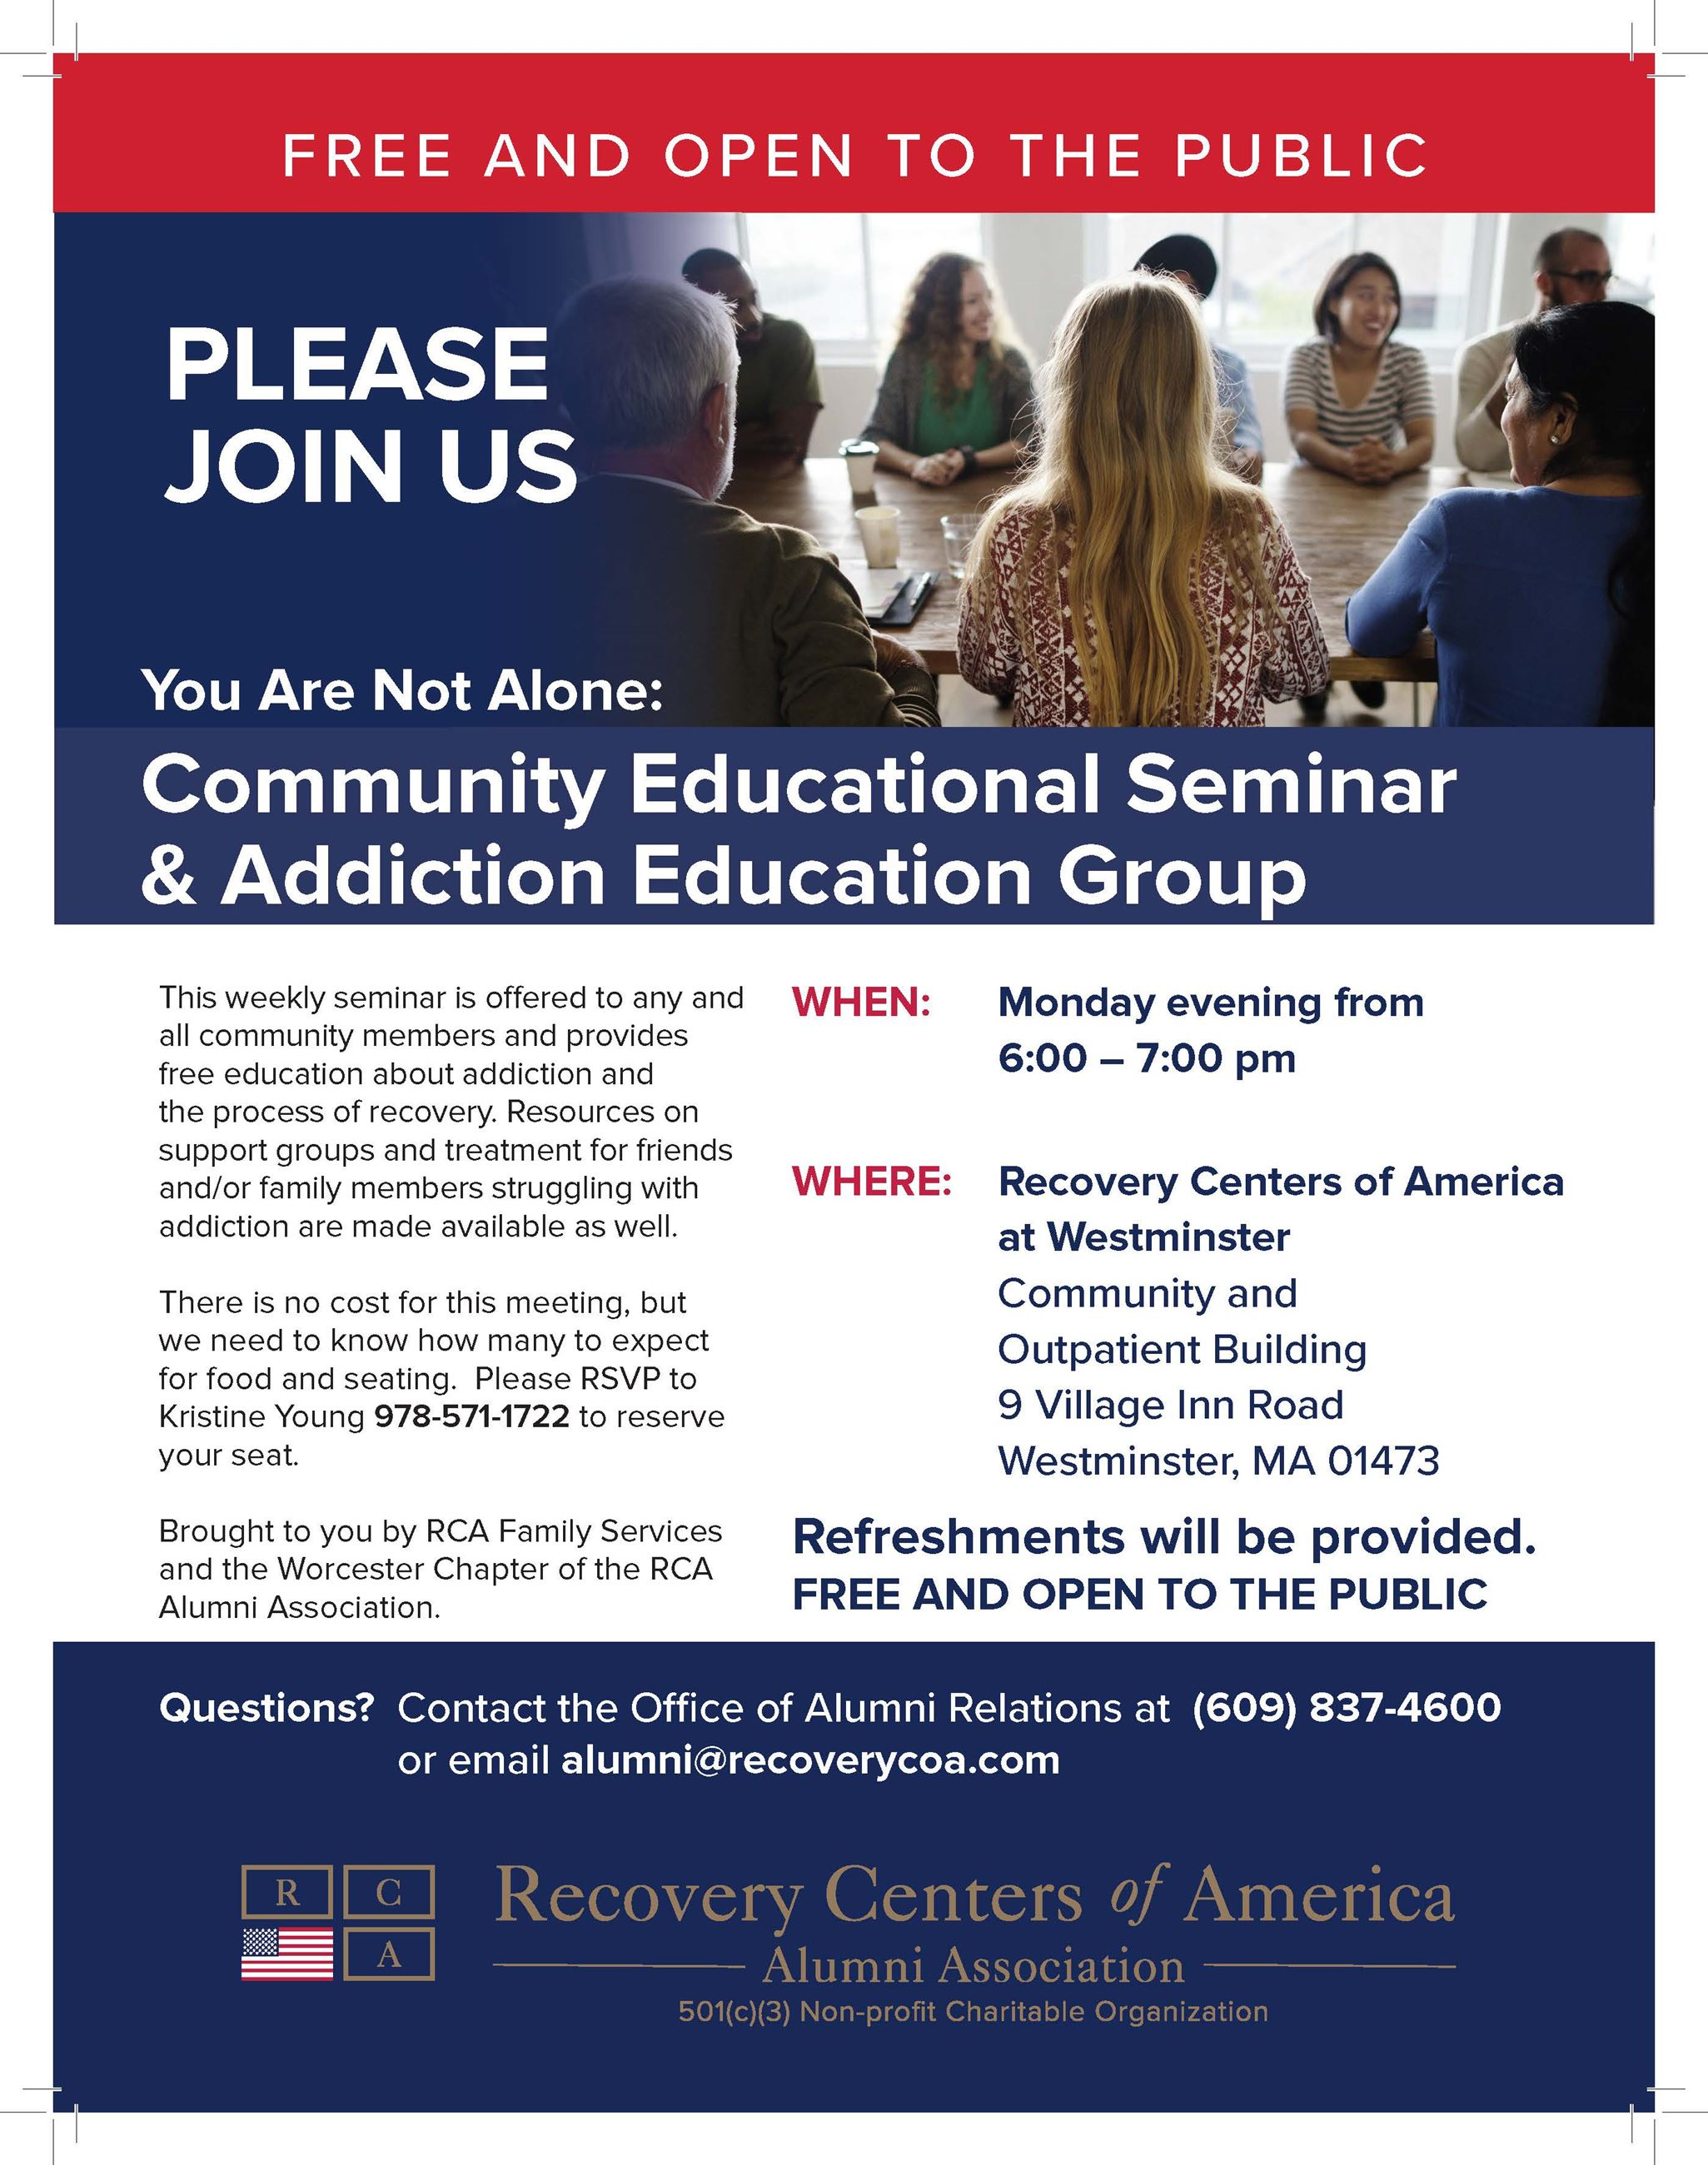 Community Education Seminar and Addiction Education Group